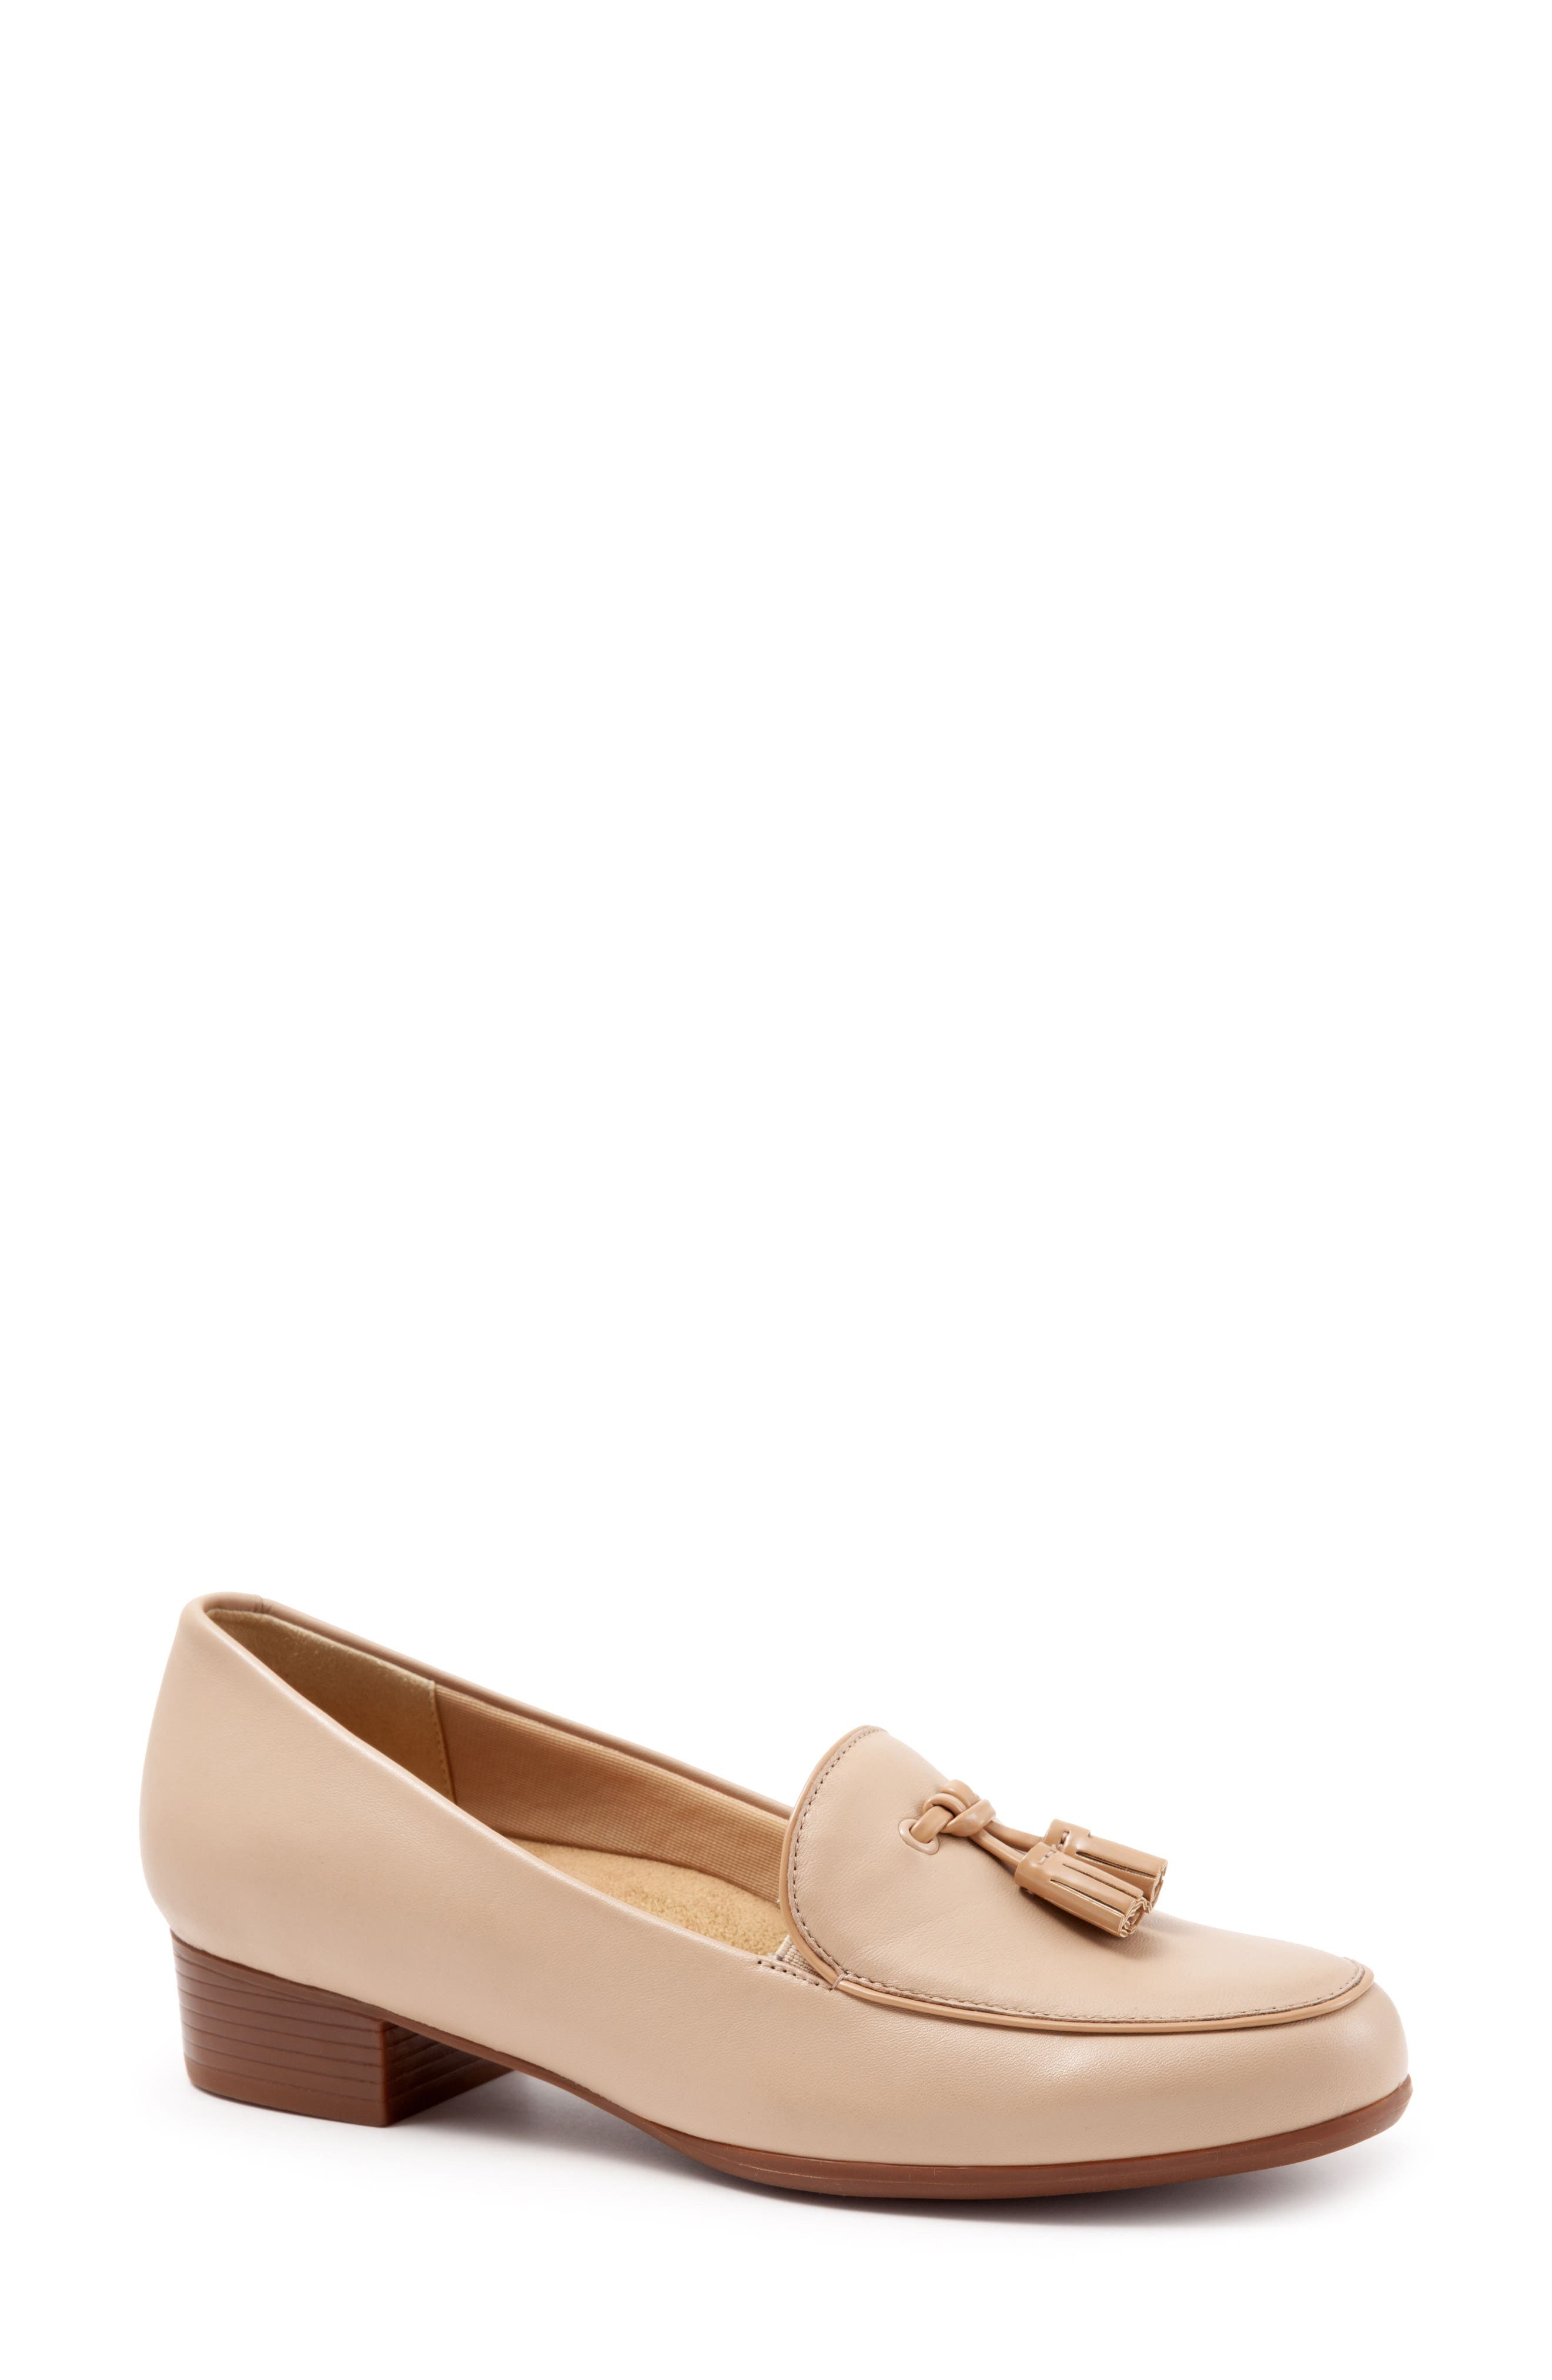 TROTTERS Mary Tassel Loafer, Main, color, NUDE LEATHER